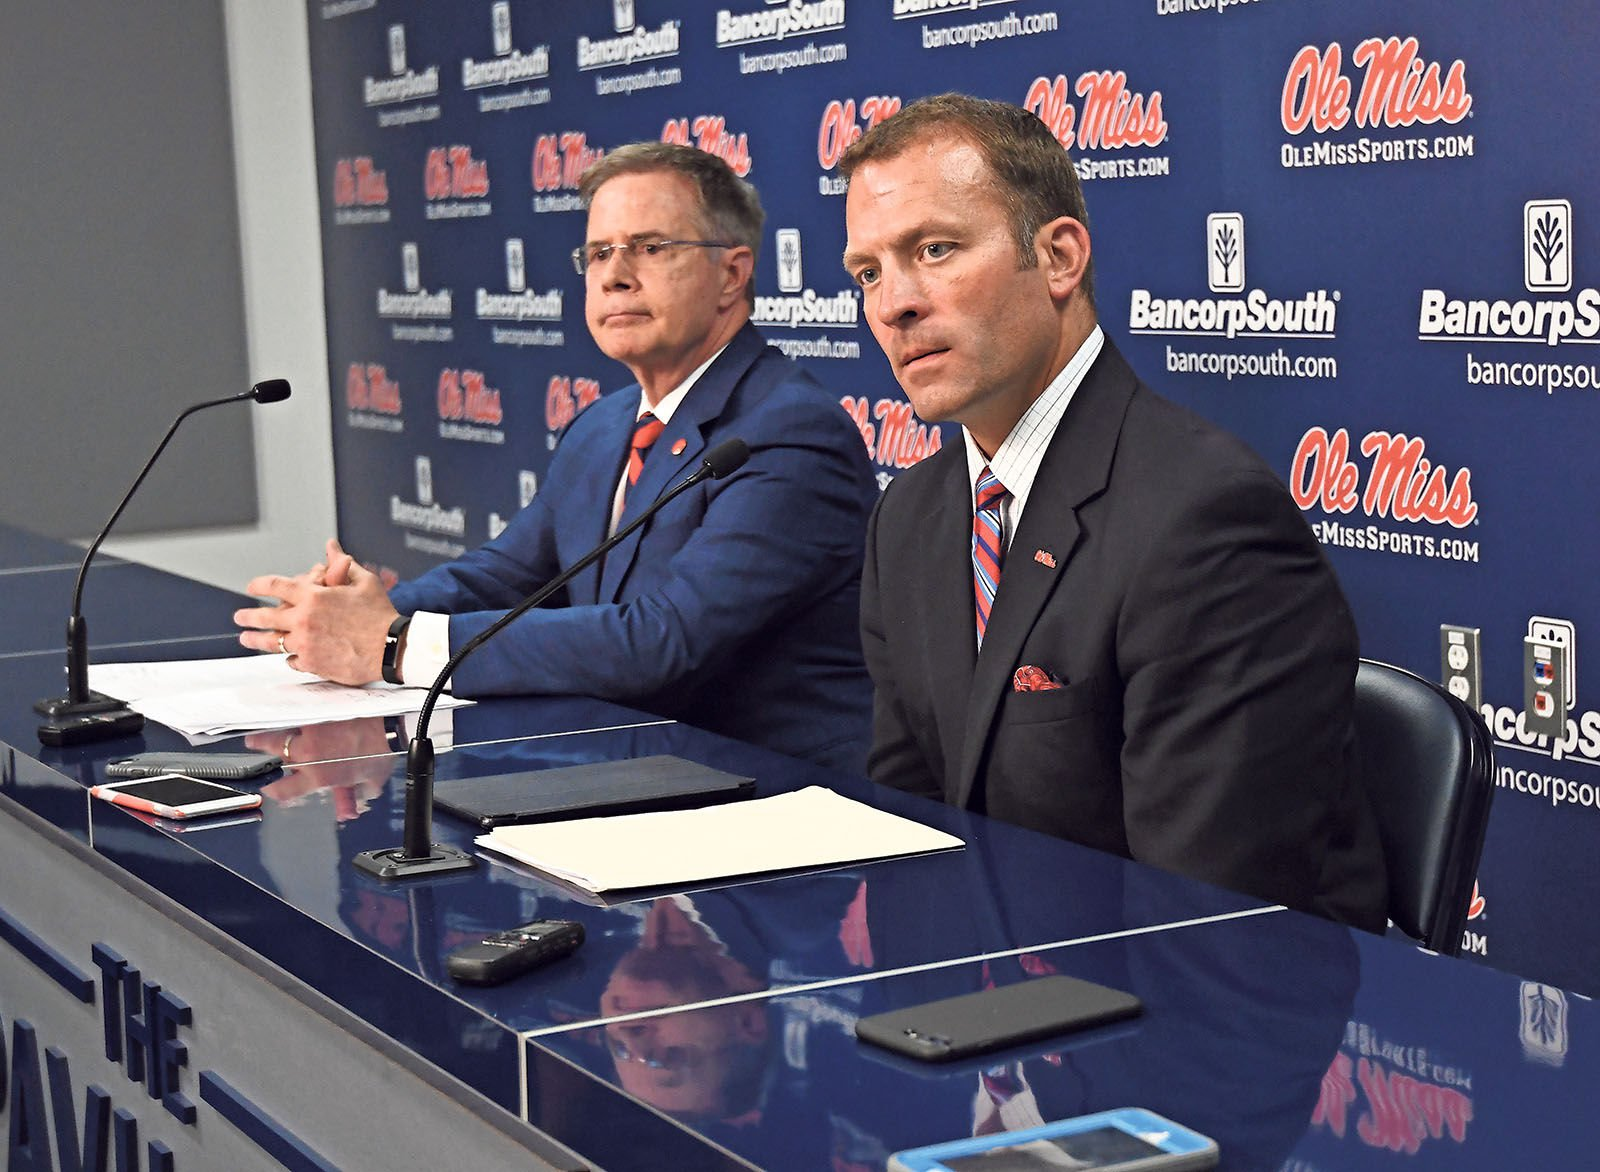 Hugh Freeze resigns as head coach at Ole Miss